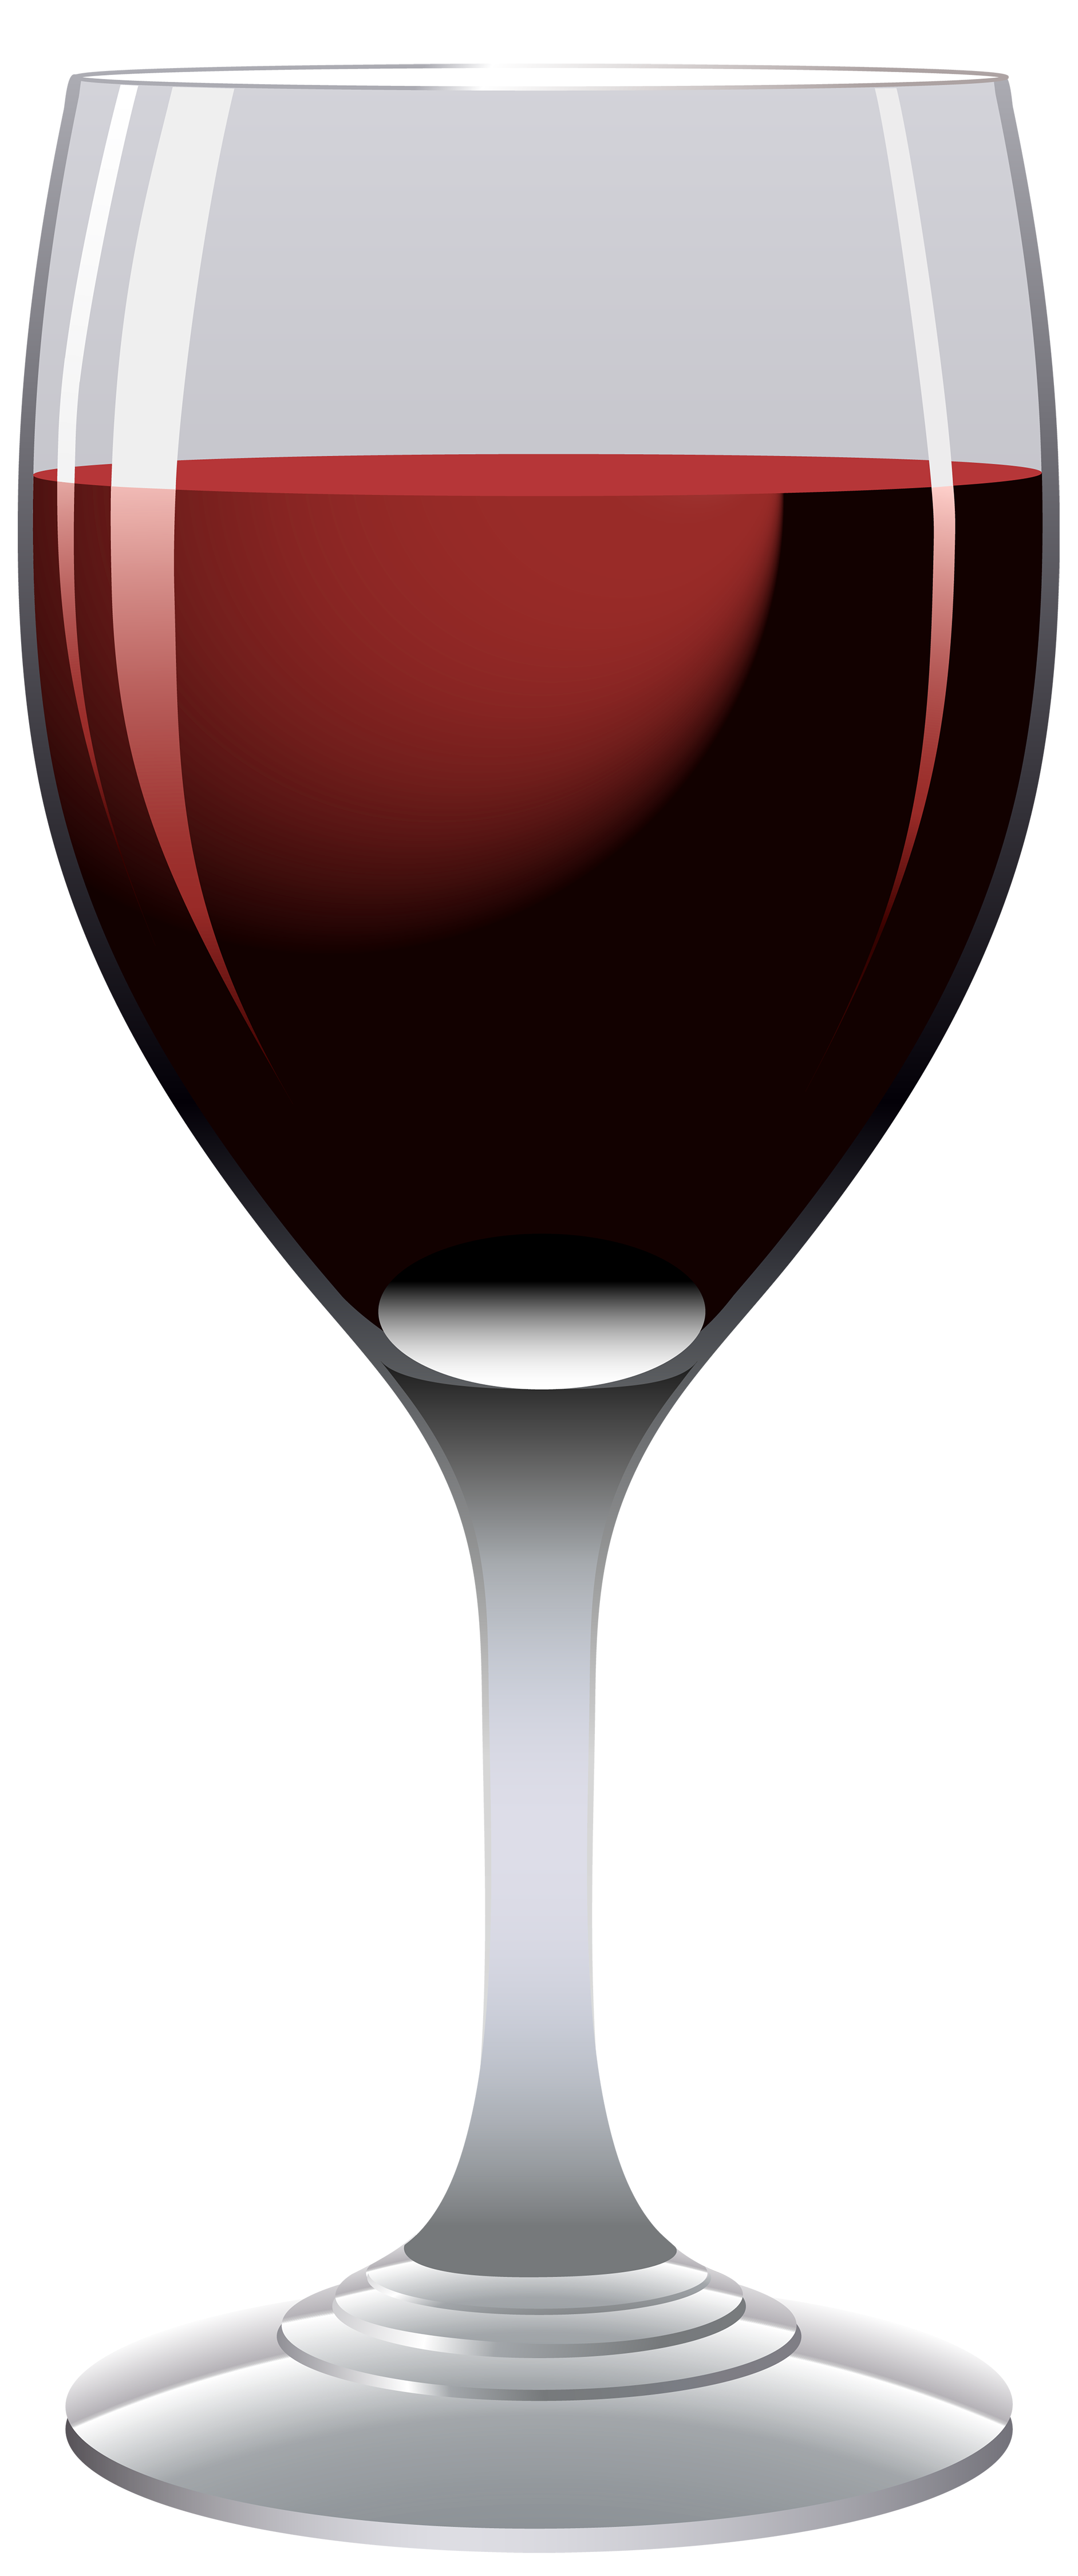 Red glass png image. Clipart heart wine